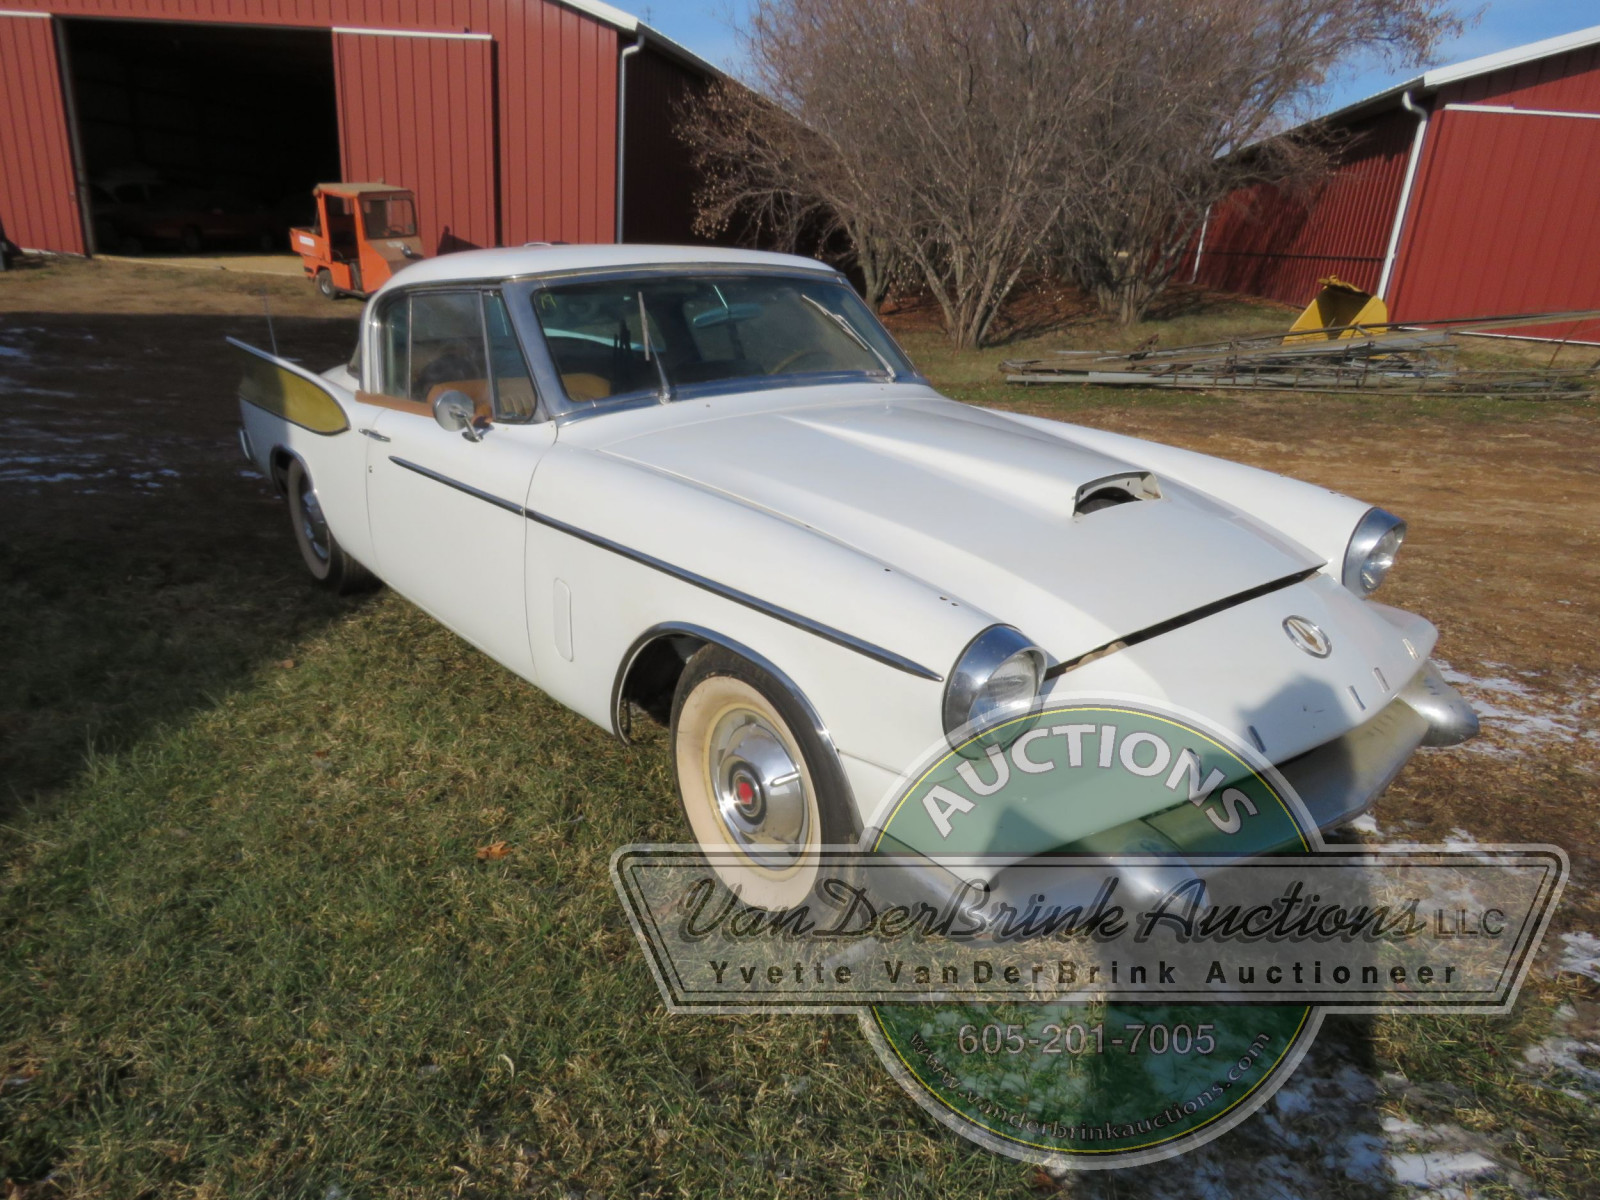 Rare 1958 Supercharged Packard Hawk - Image 3